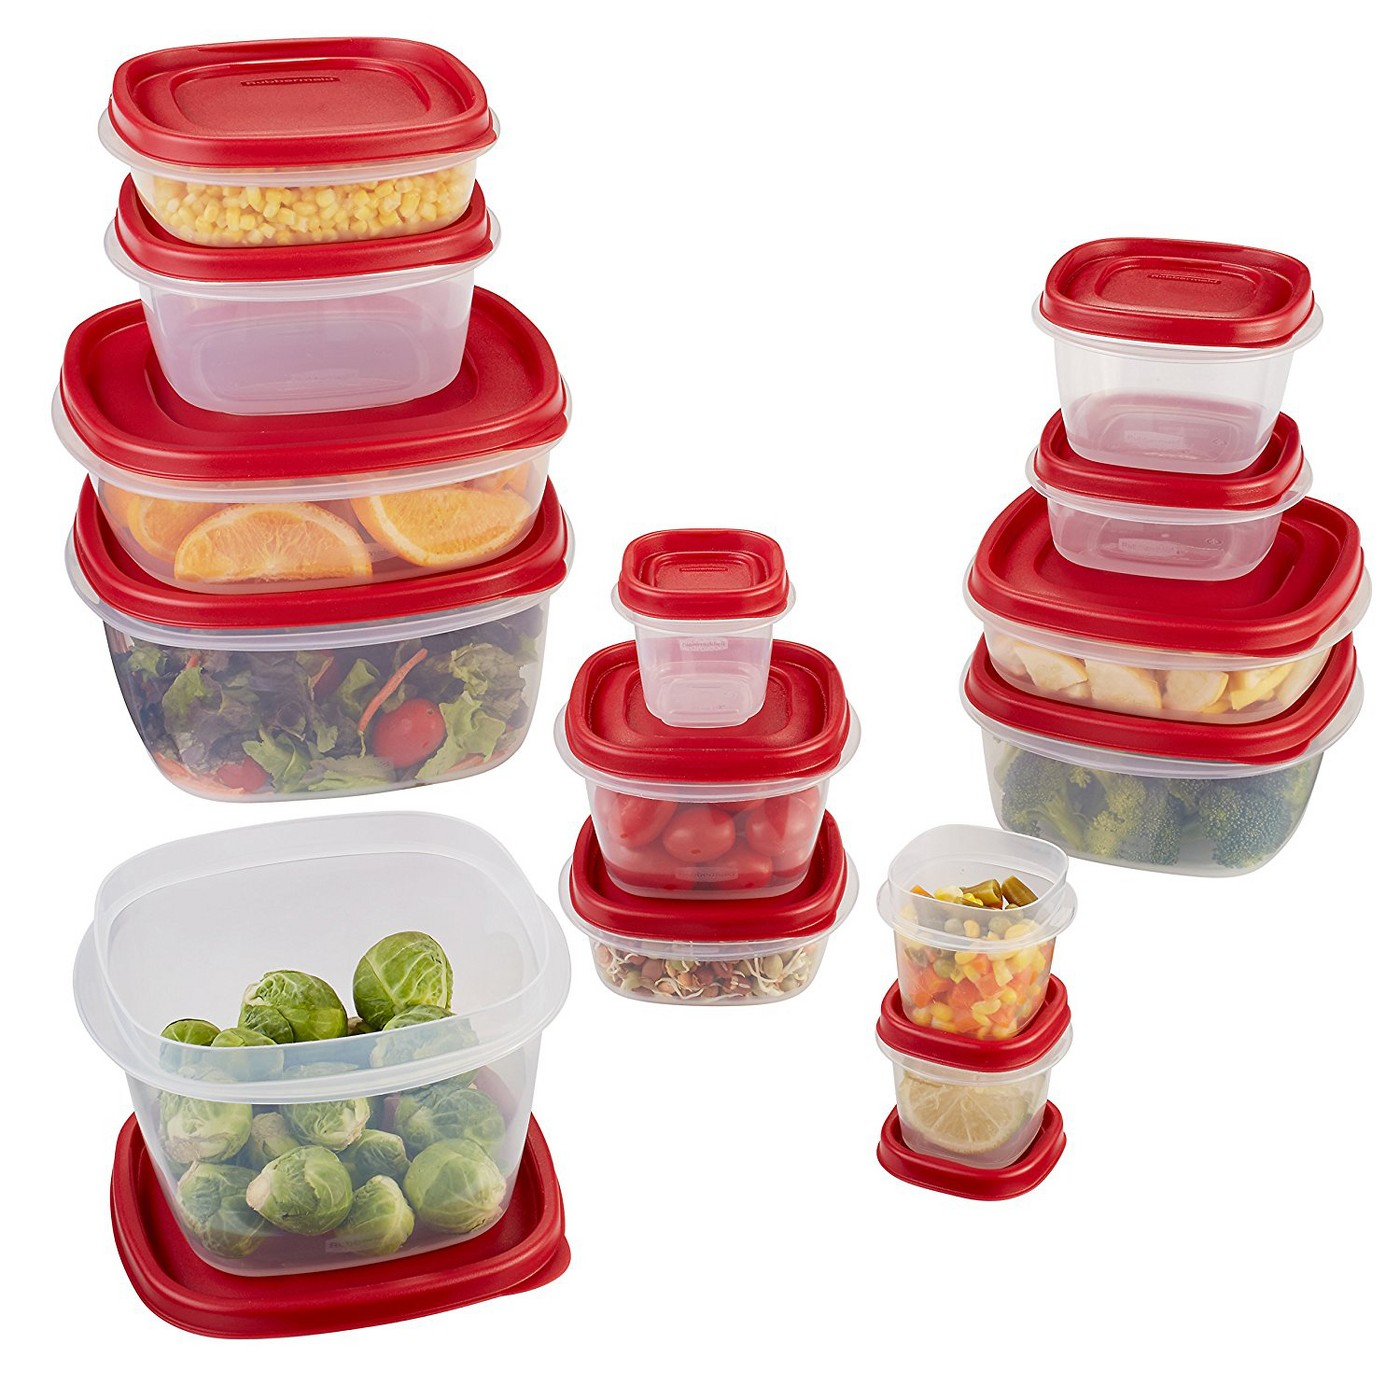 Rubbermaid 28pc Easy Find Lids Food Storage Set - image 2 of 6